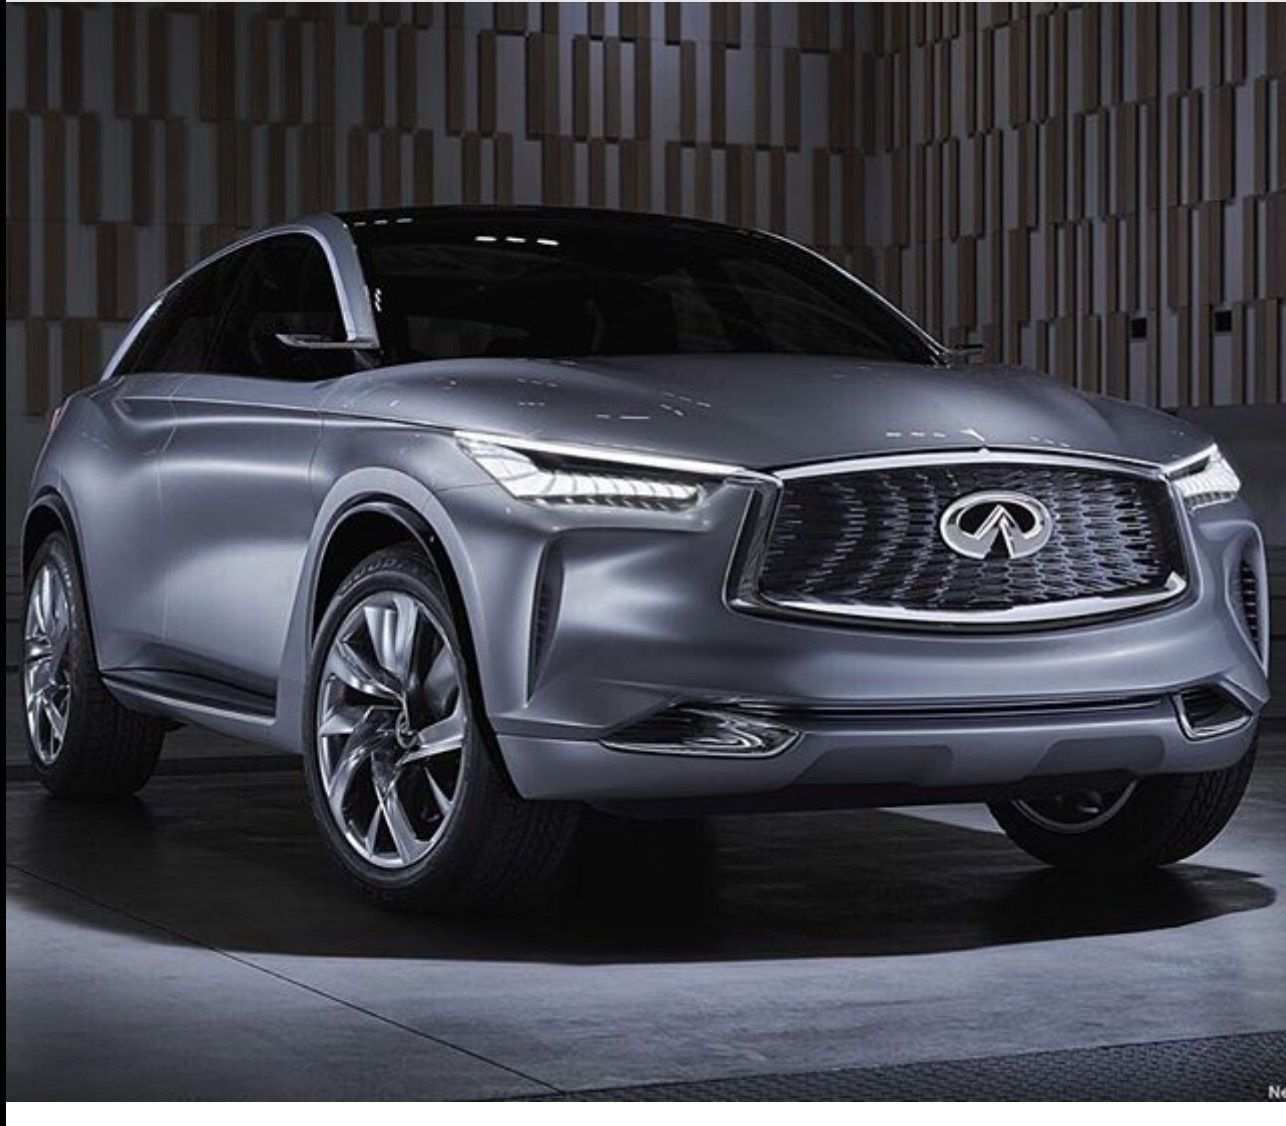 30 Gallery of 2020 Infiniti Fx35 Performance and New Engine for 2020 Infiniti Fx35